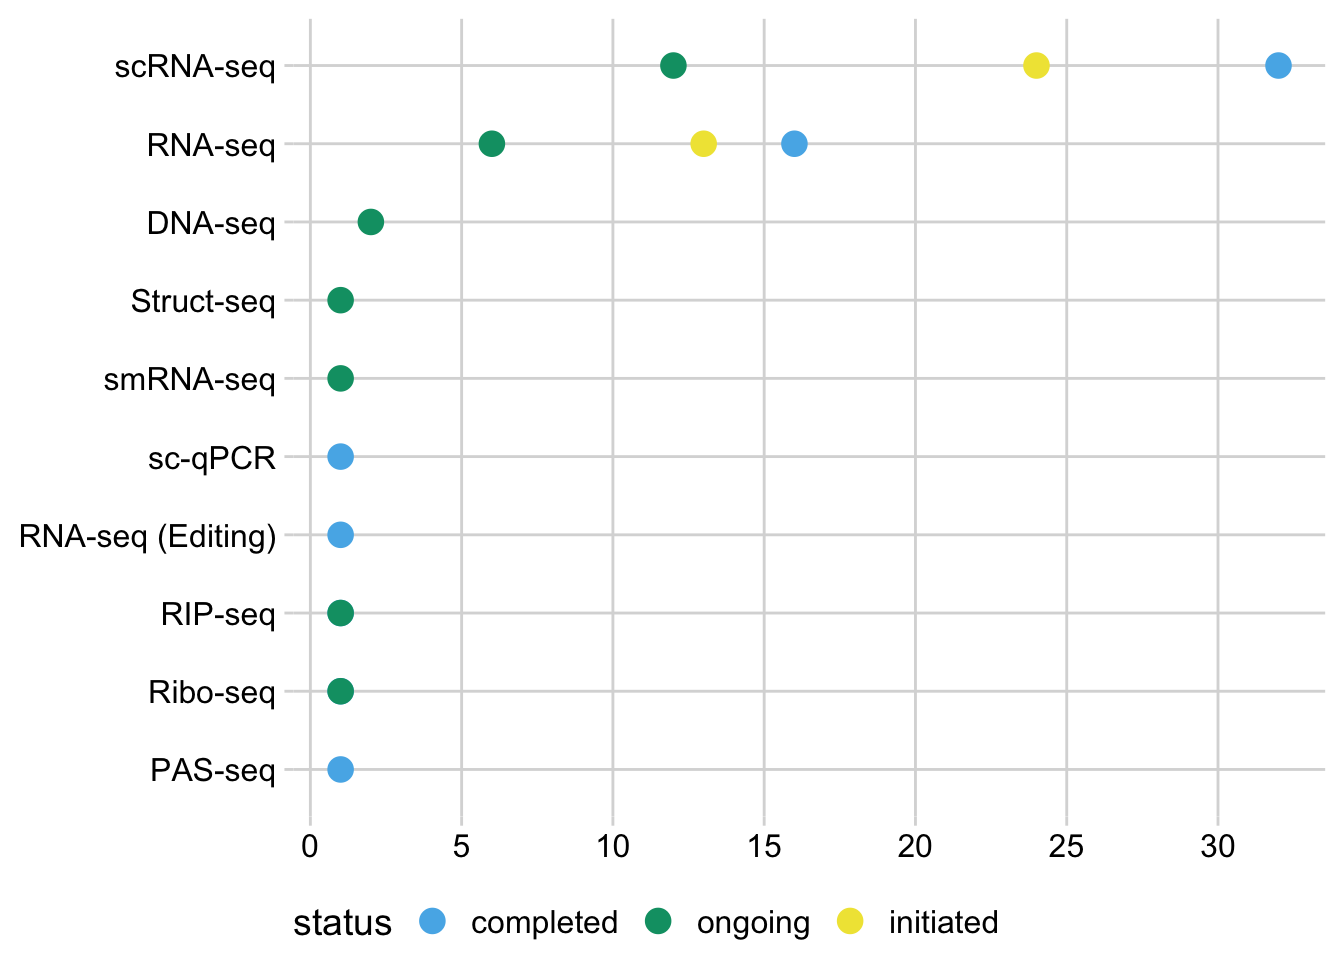 Project types and status. The majority of projects involve single-cell mRNA sequencing, alongside a variety of other RNA sequencing experiments.